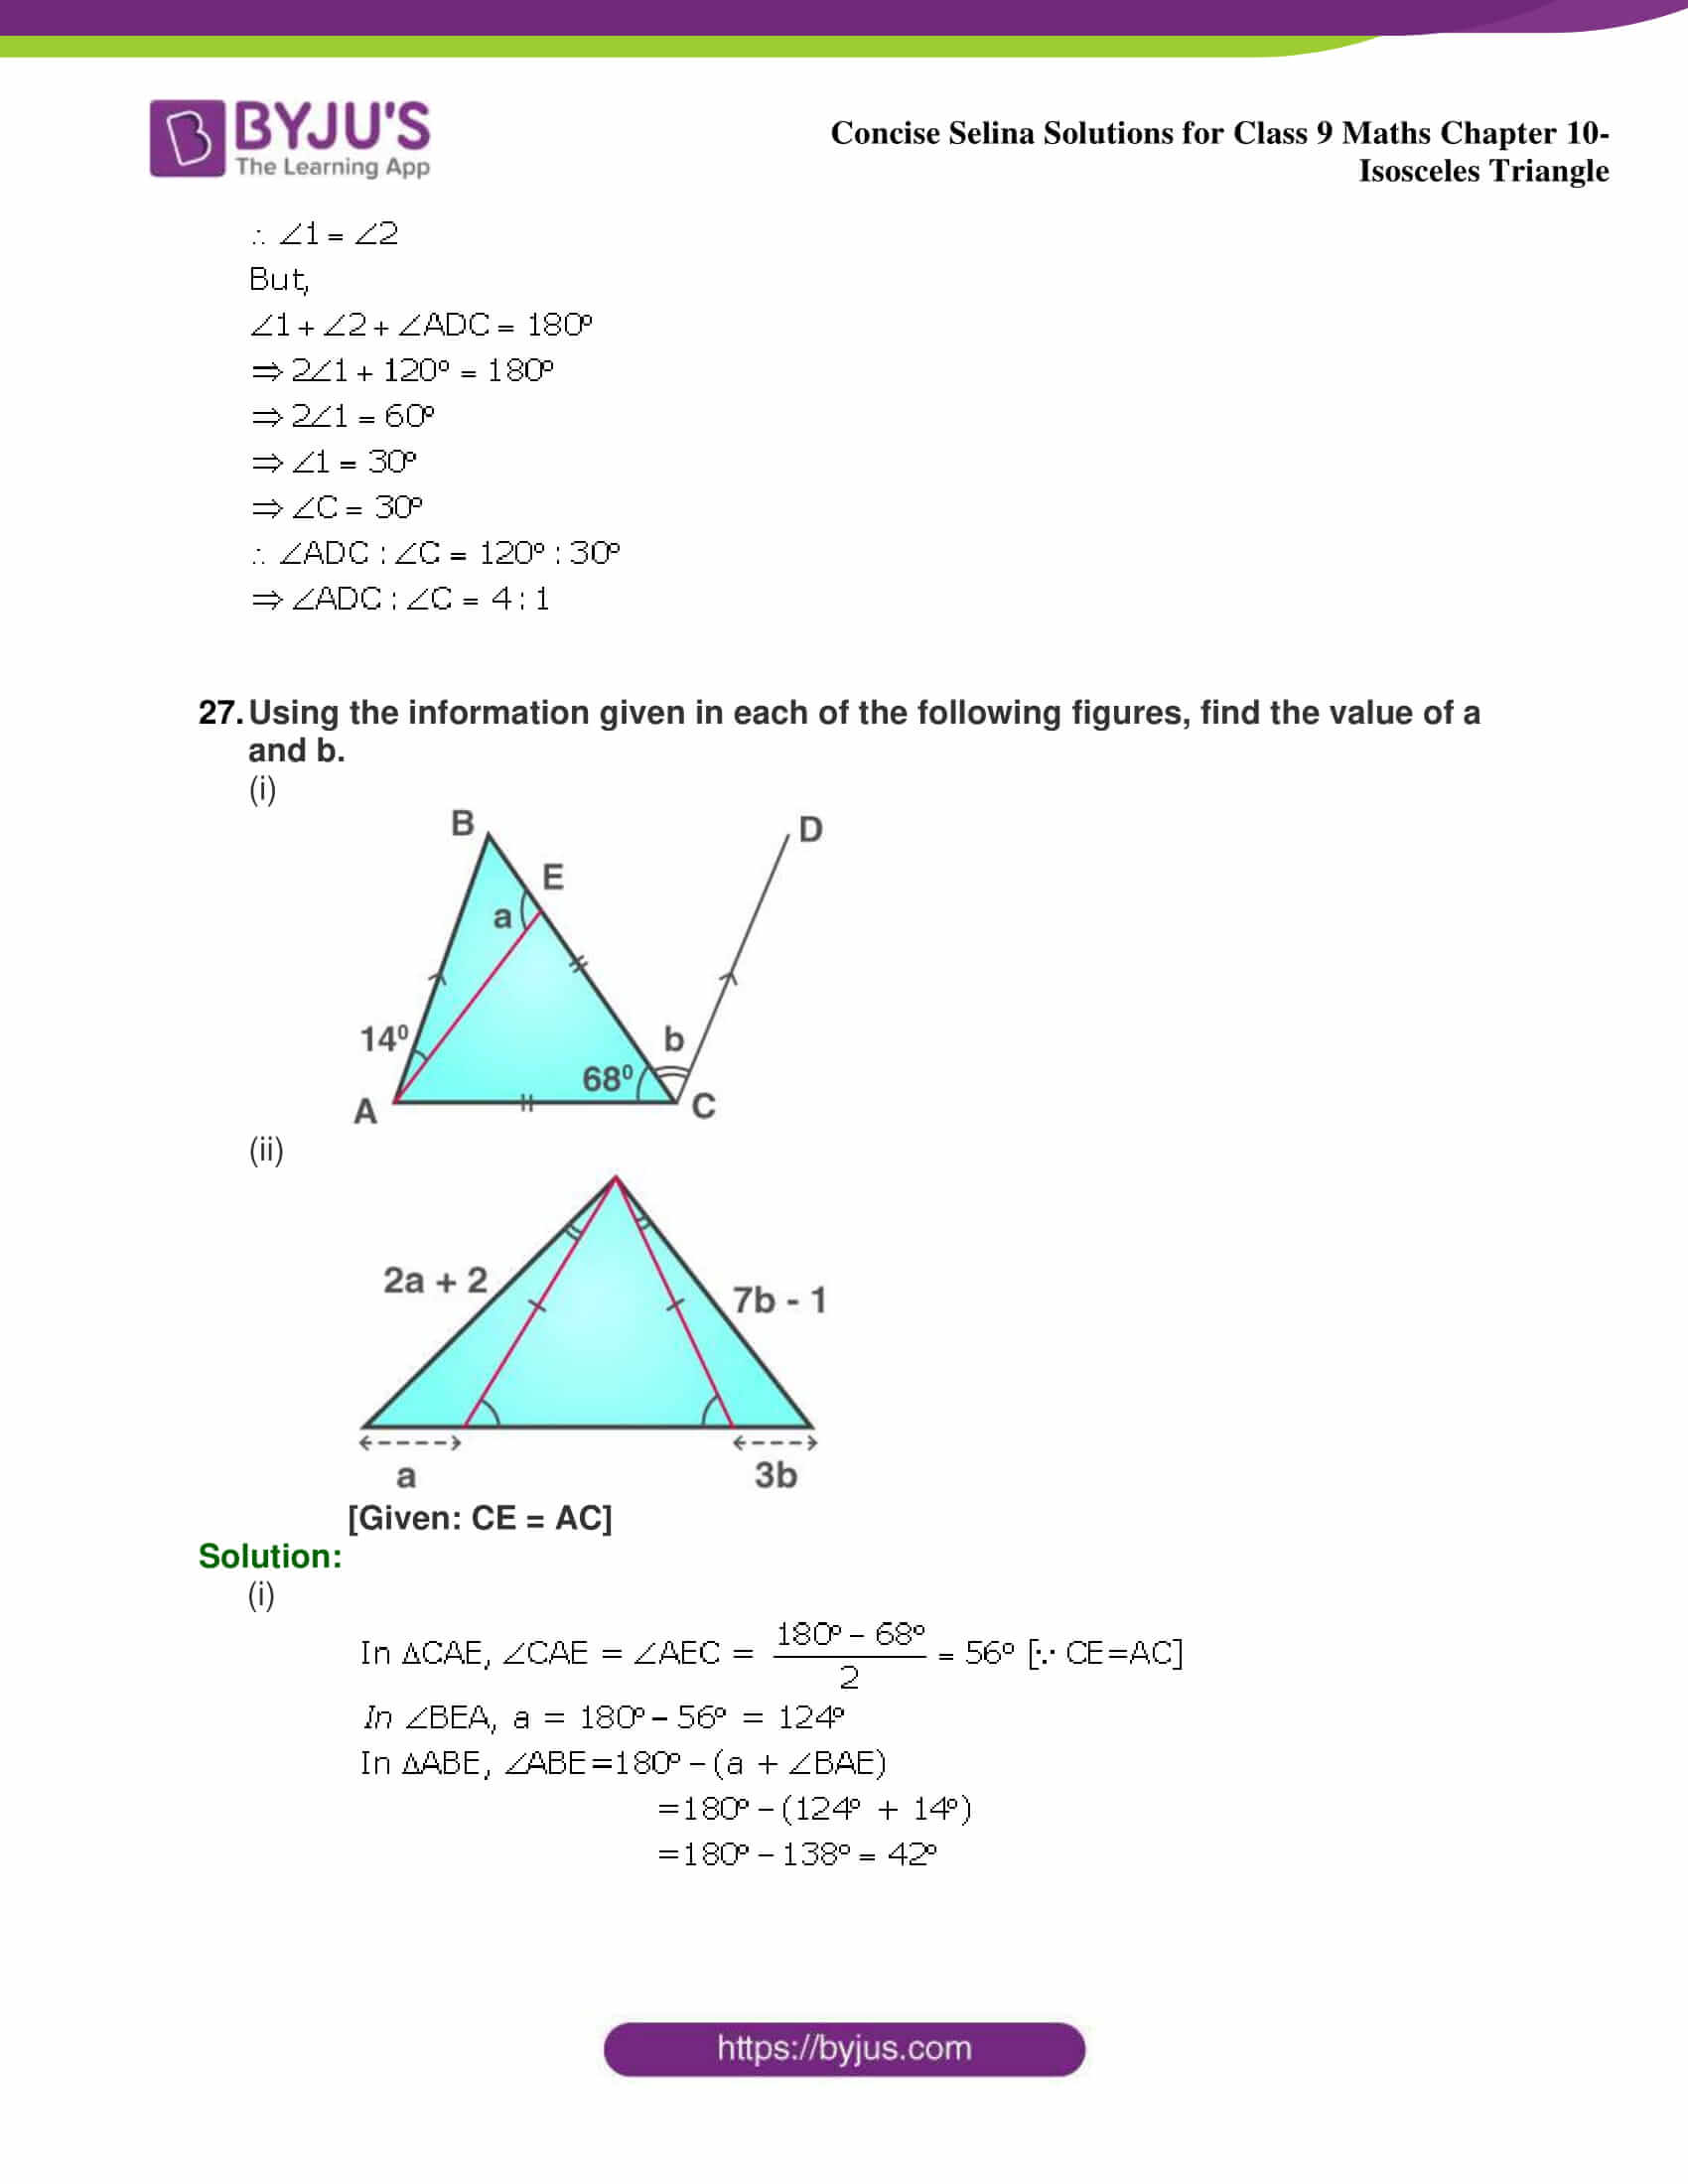 selina Solutions for Class 9 Maths Chapter 10 part 44